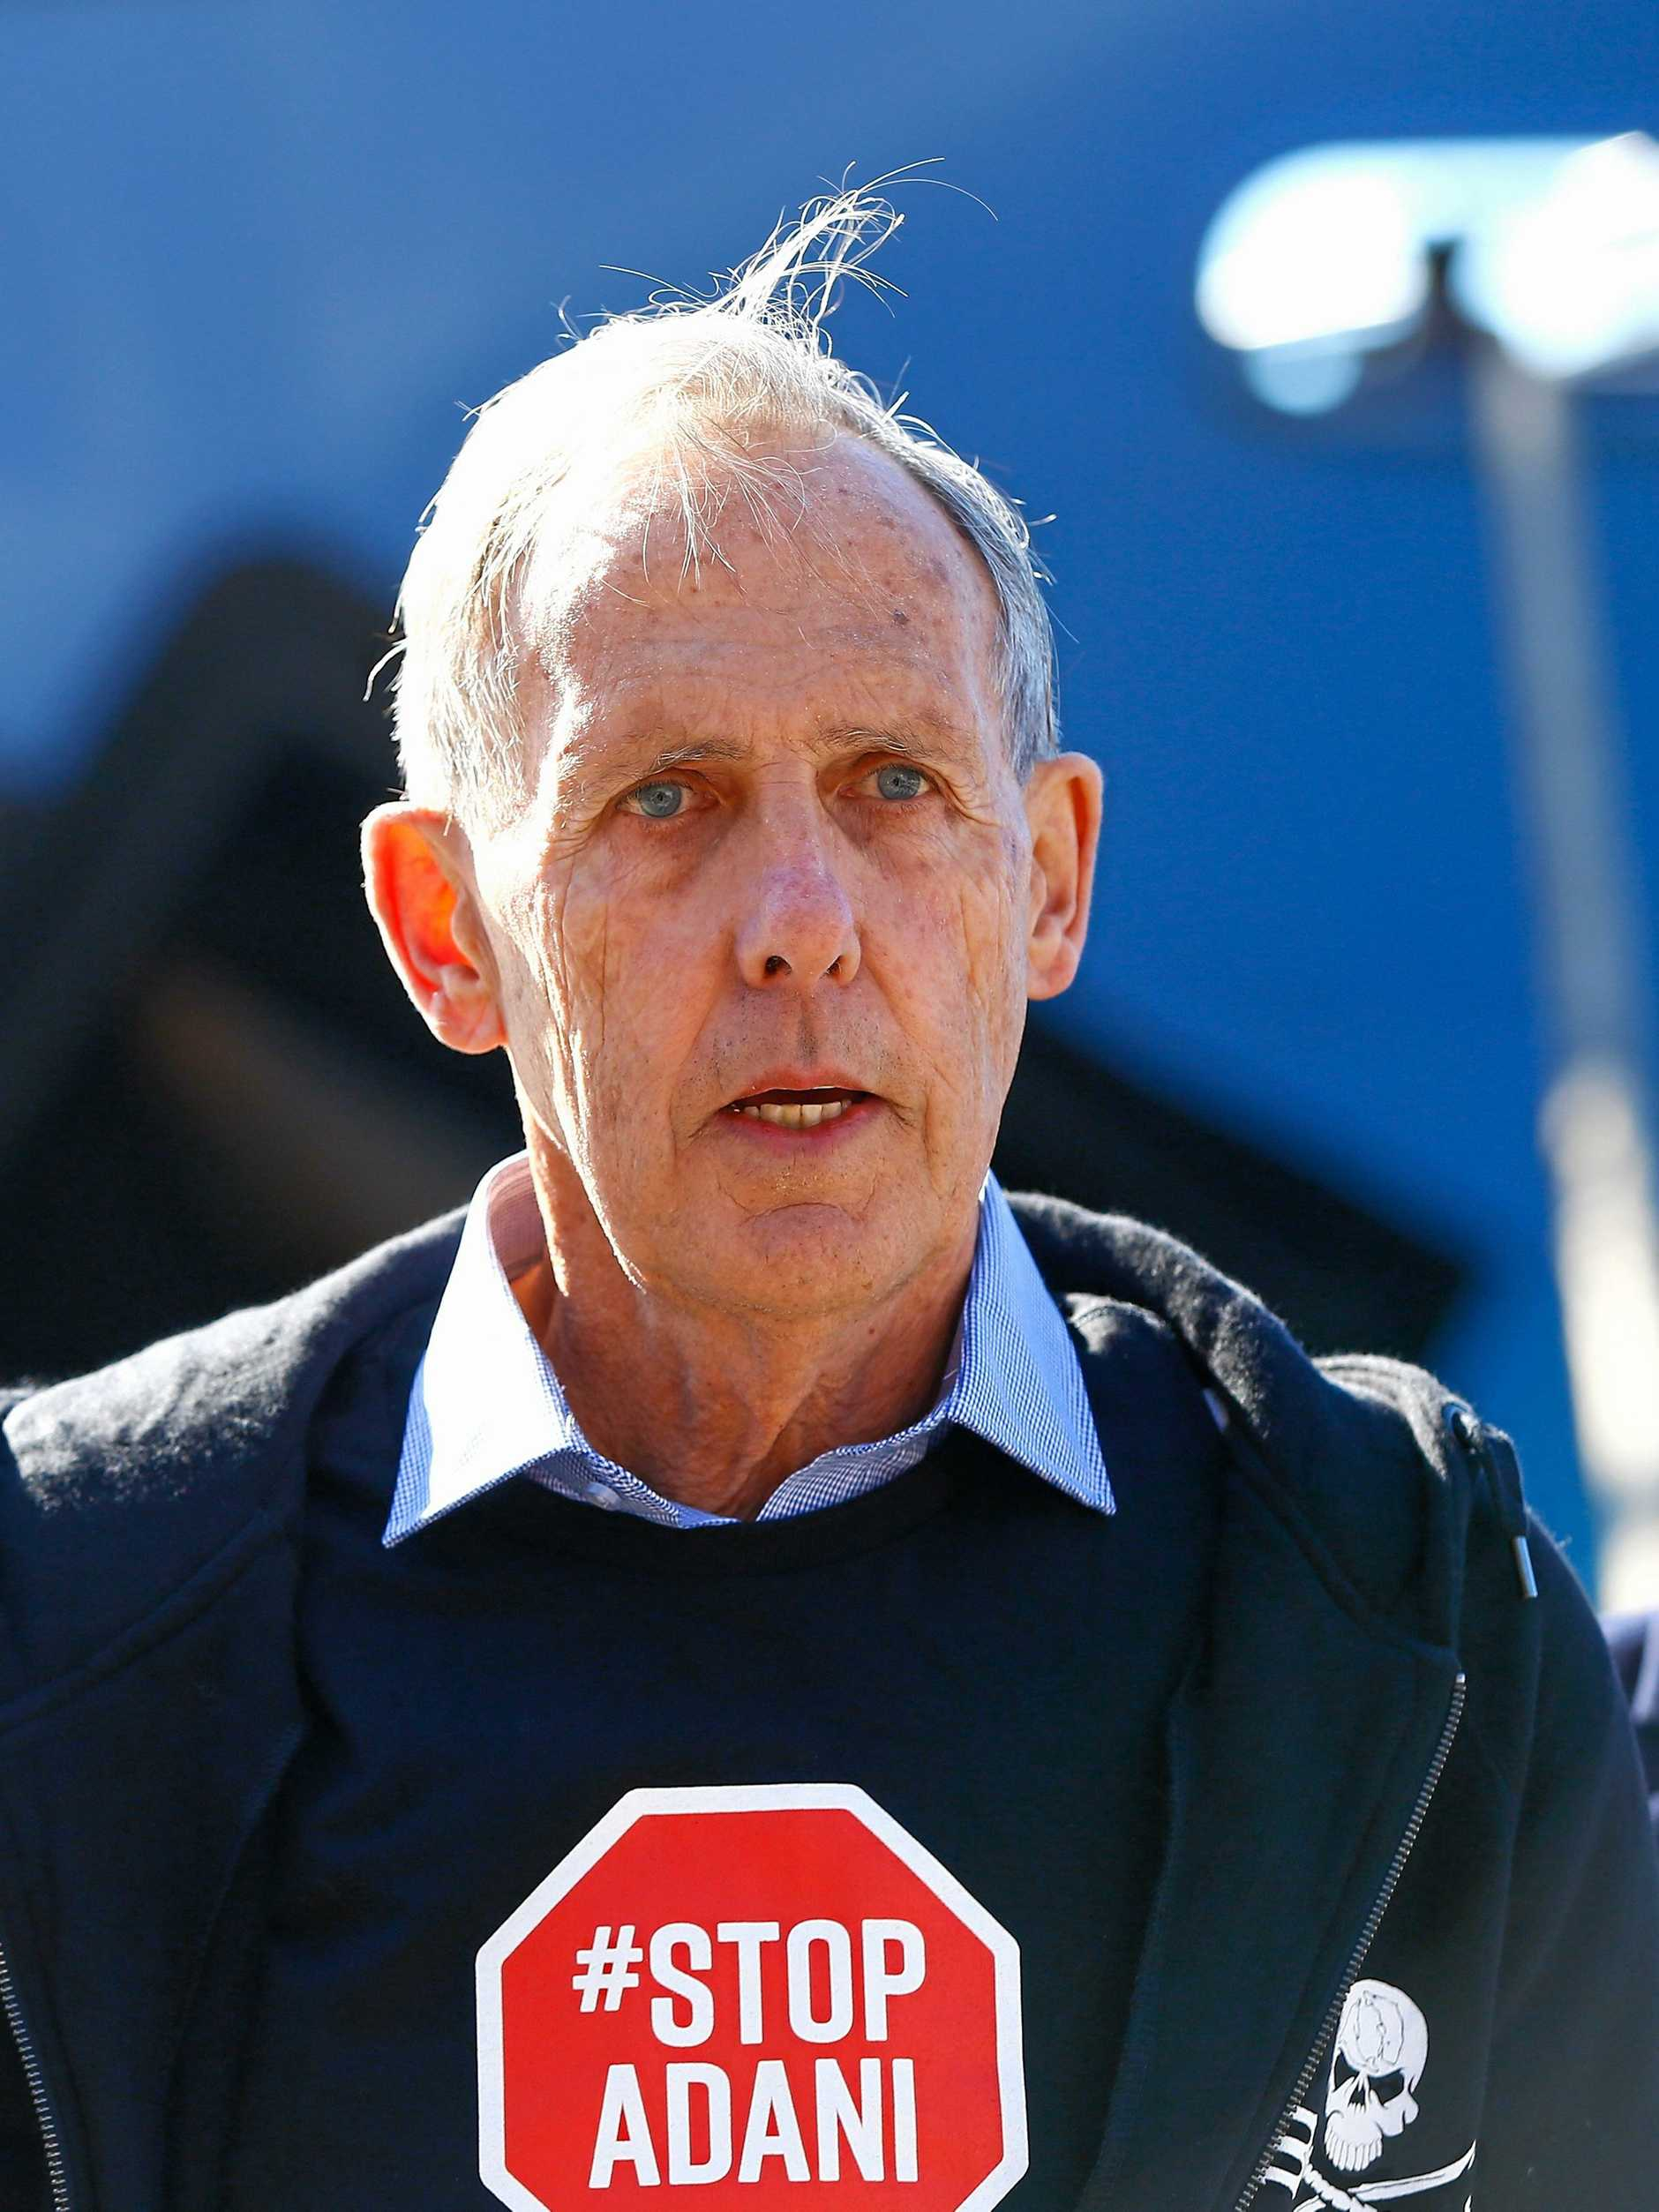 Former Australian politician and environmentalist Dr Bob Brown is leading a thousand-strong delegation into Central Queensland to protest against the Adani mine.